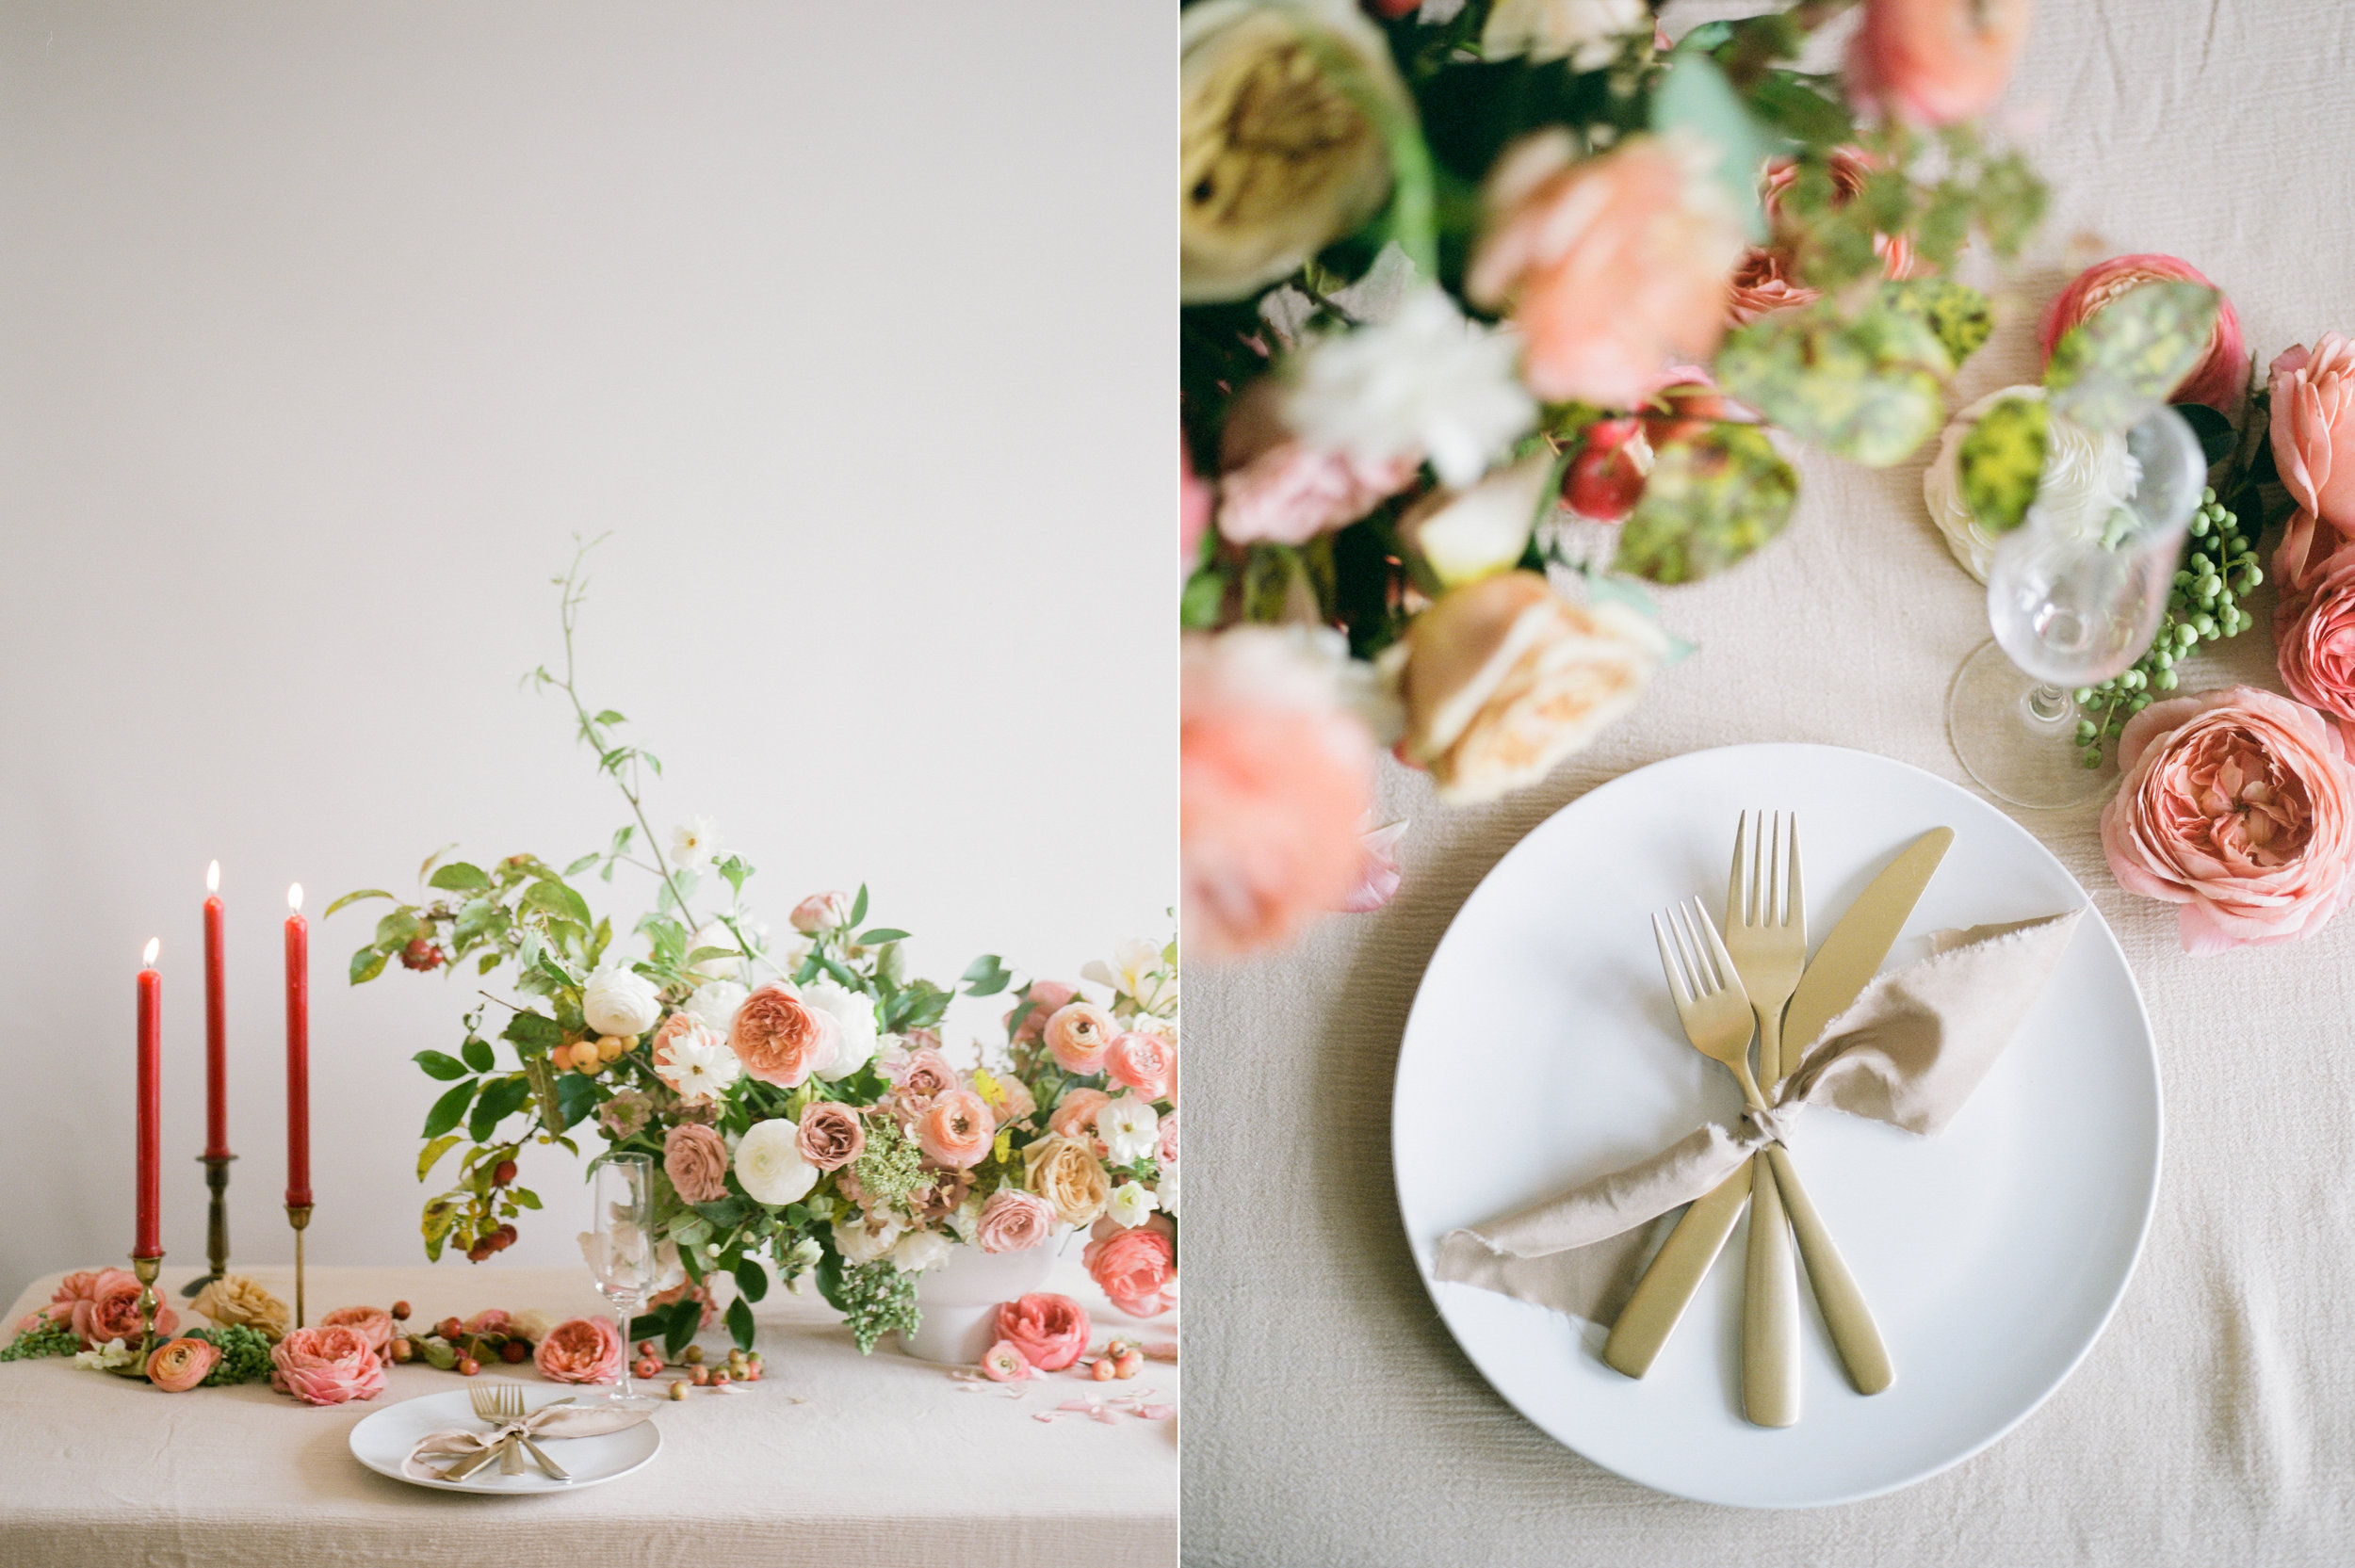 film wedding photographer - Houston wedding photographer - intimate wedding photographer - Christine Gosch - fall wedding inspiration - blush fall wedding - wedding flowers - fall wedding flowers - wedding table inspo-7- Maxit Flower Design.jpg